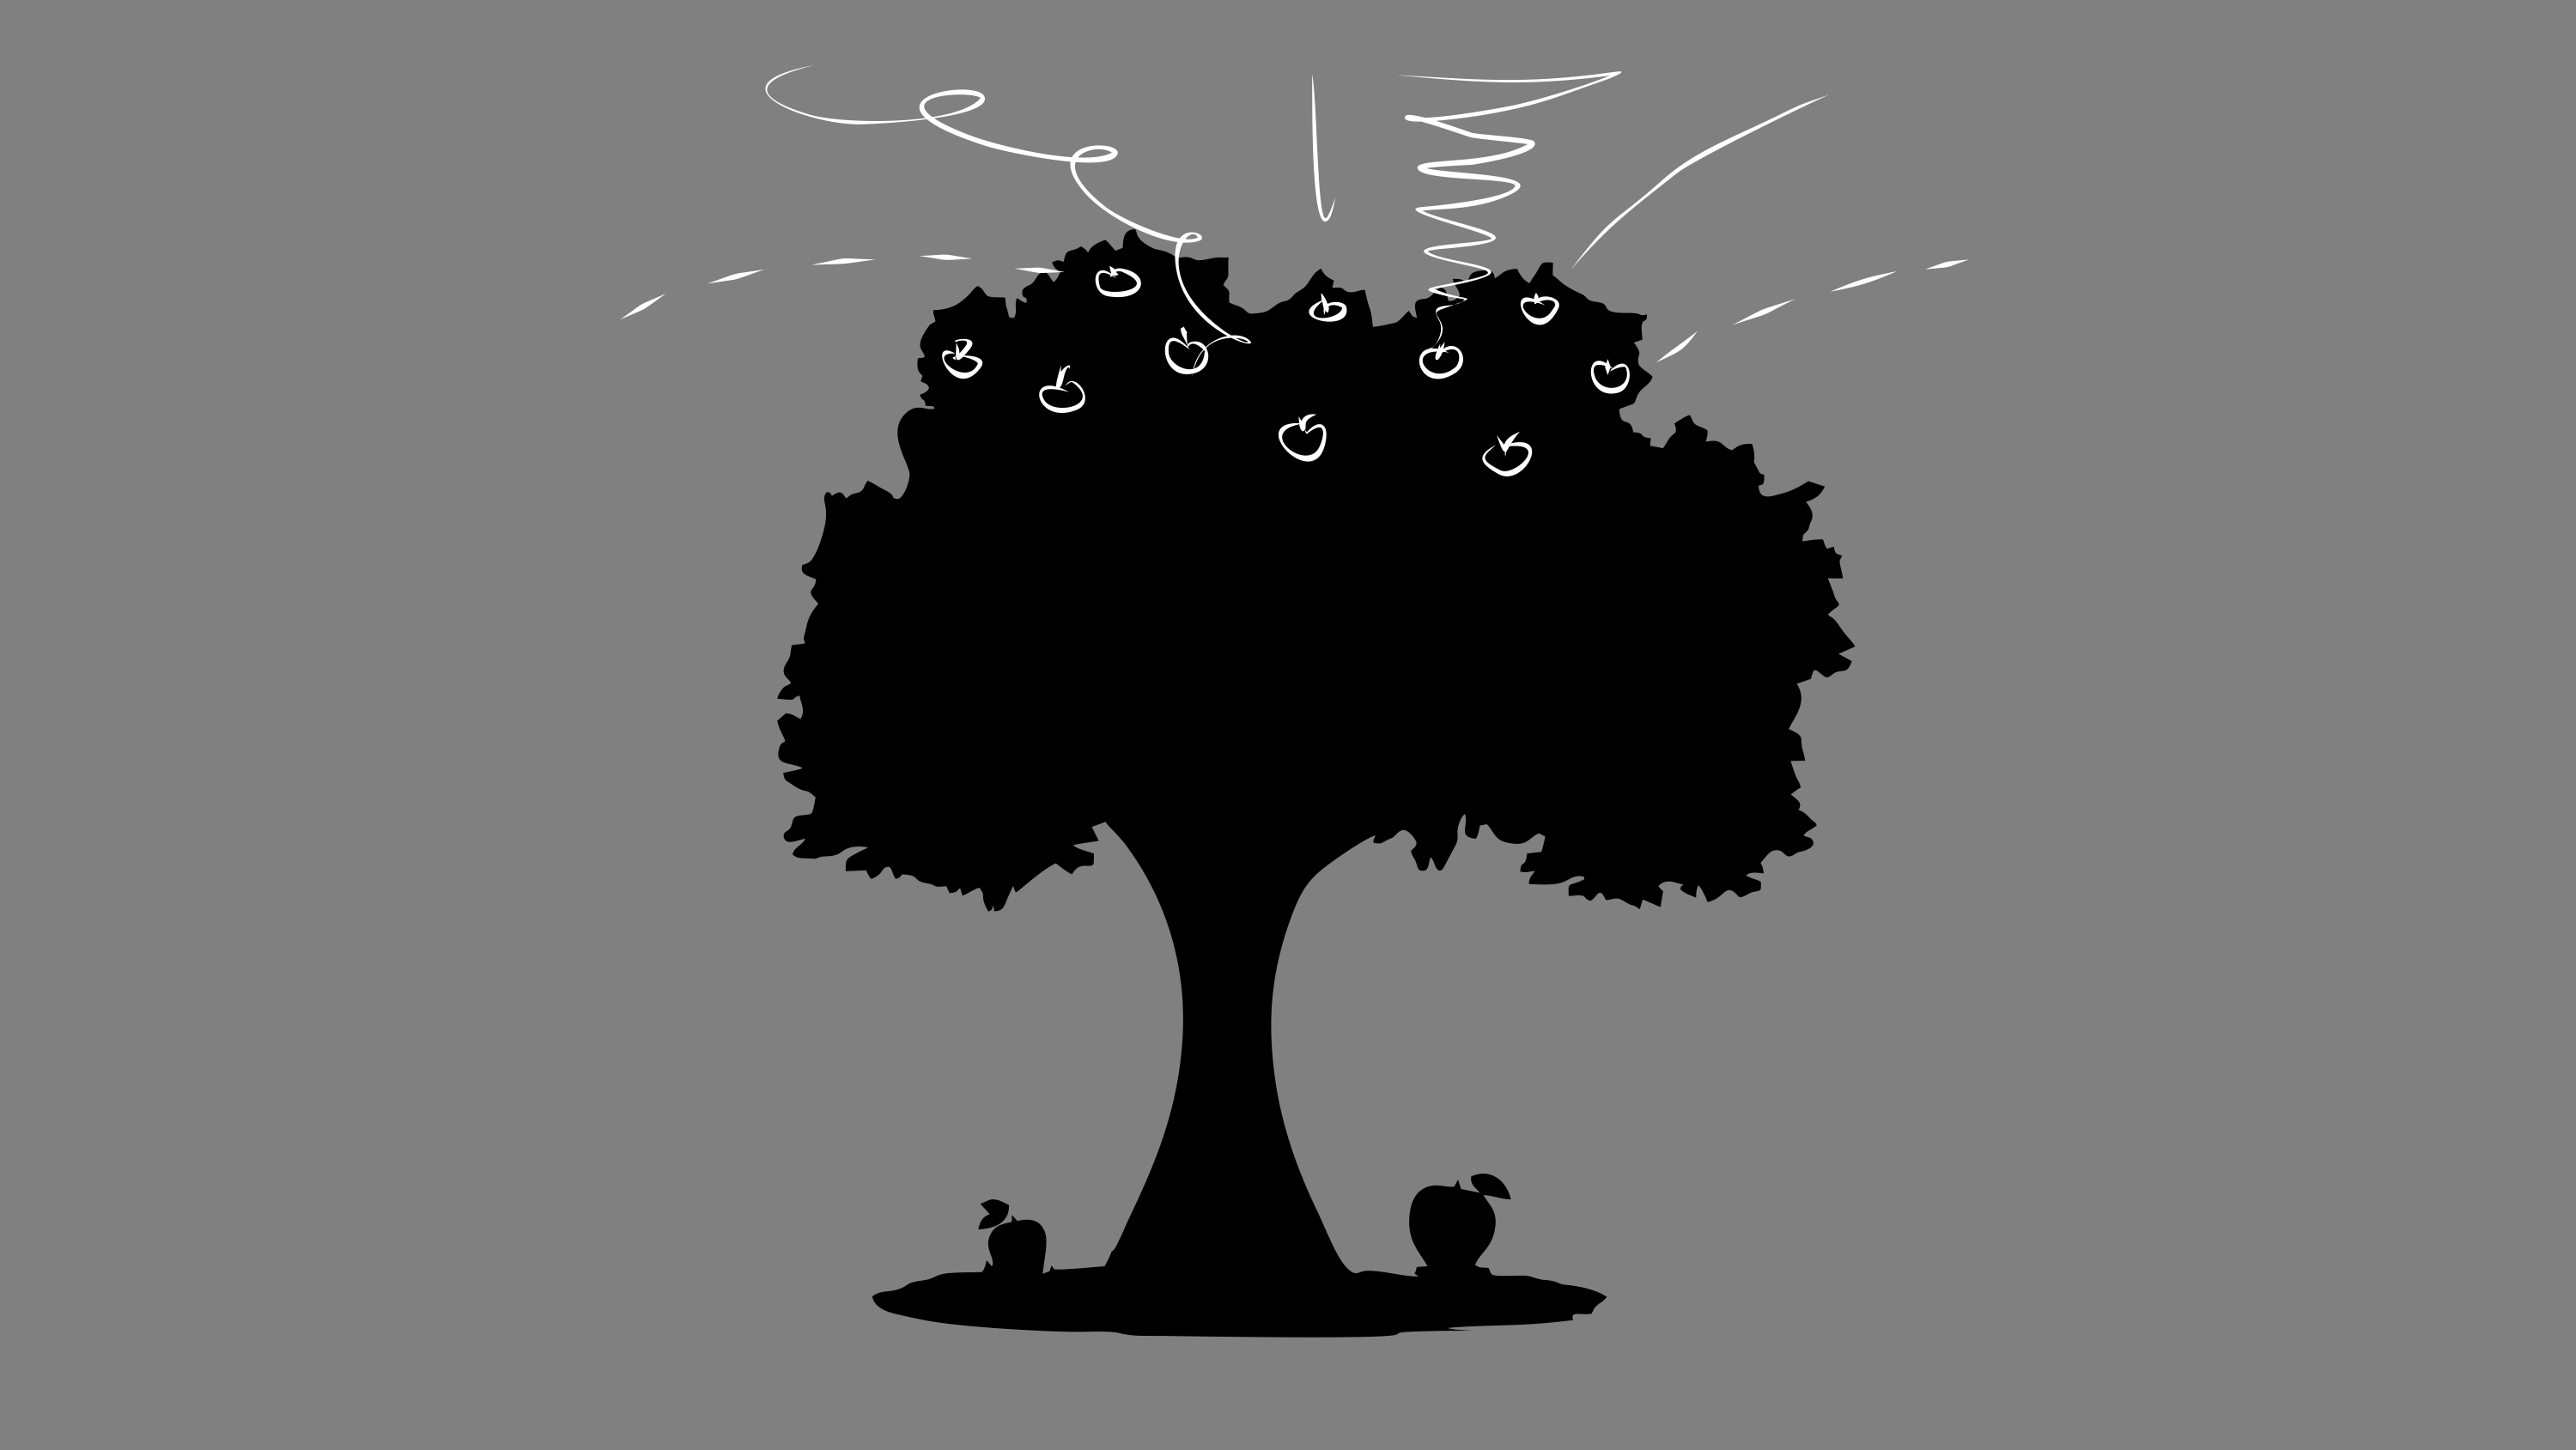 A drawing of an apple tree with fruit at the top of the tree.